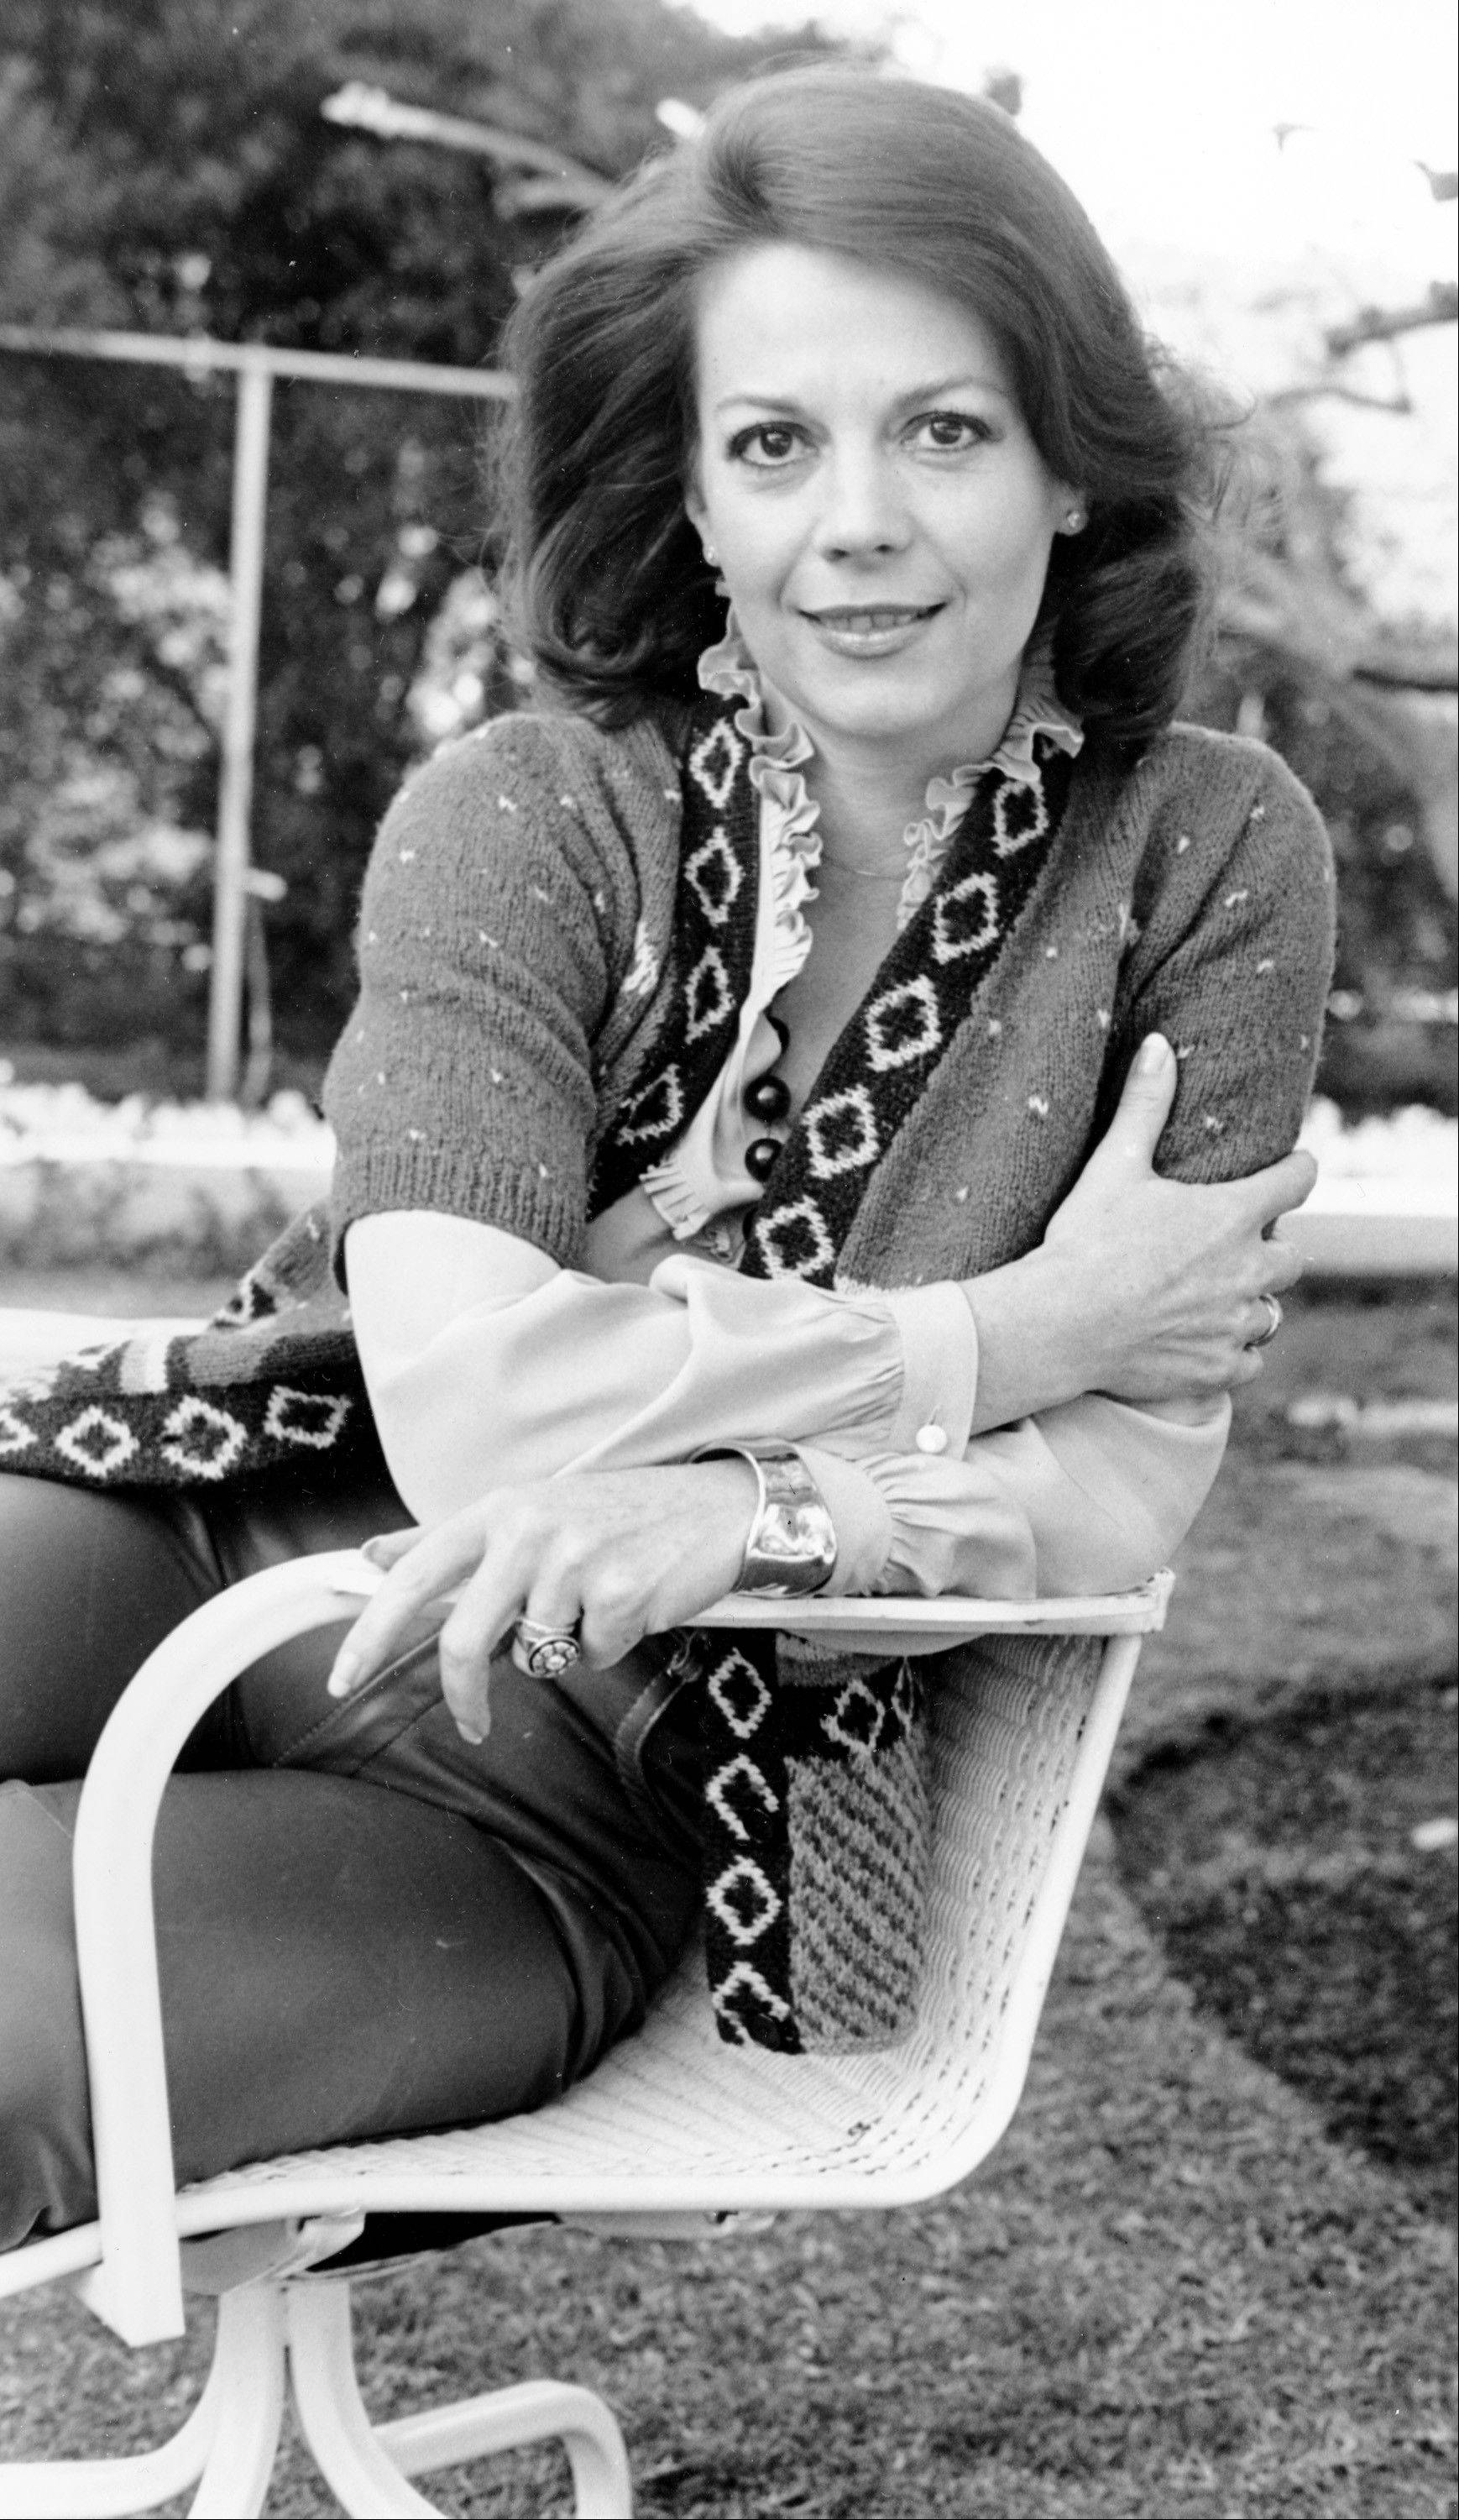 In a Jan. 30, 1979 file photo, actress Natalie Wood poses in Los Angeles, Calif. Dennis Davern, captain of the yacht Splendour, which Wood was aboard on the night she died, said on national TV Friday, Nov. 18, 2011 that he lied to investigators about Natalie Wood's mysterious death 30 years ago and blames the actress' husband at the time, Robert Wagner, for her drowning in the ocean off Southern California. A Los Angeles County sheriff's detective will speak to reporters Friday about the decision to take another look at the Oscar-nominated actress' nighttime demise.